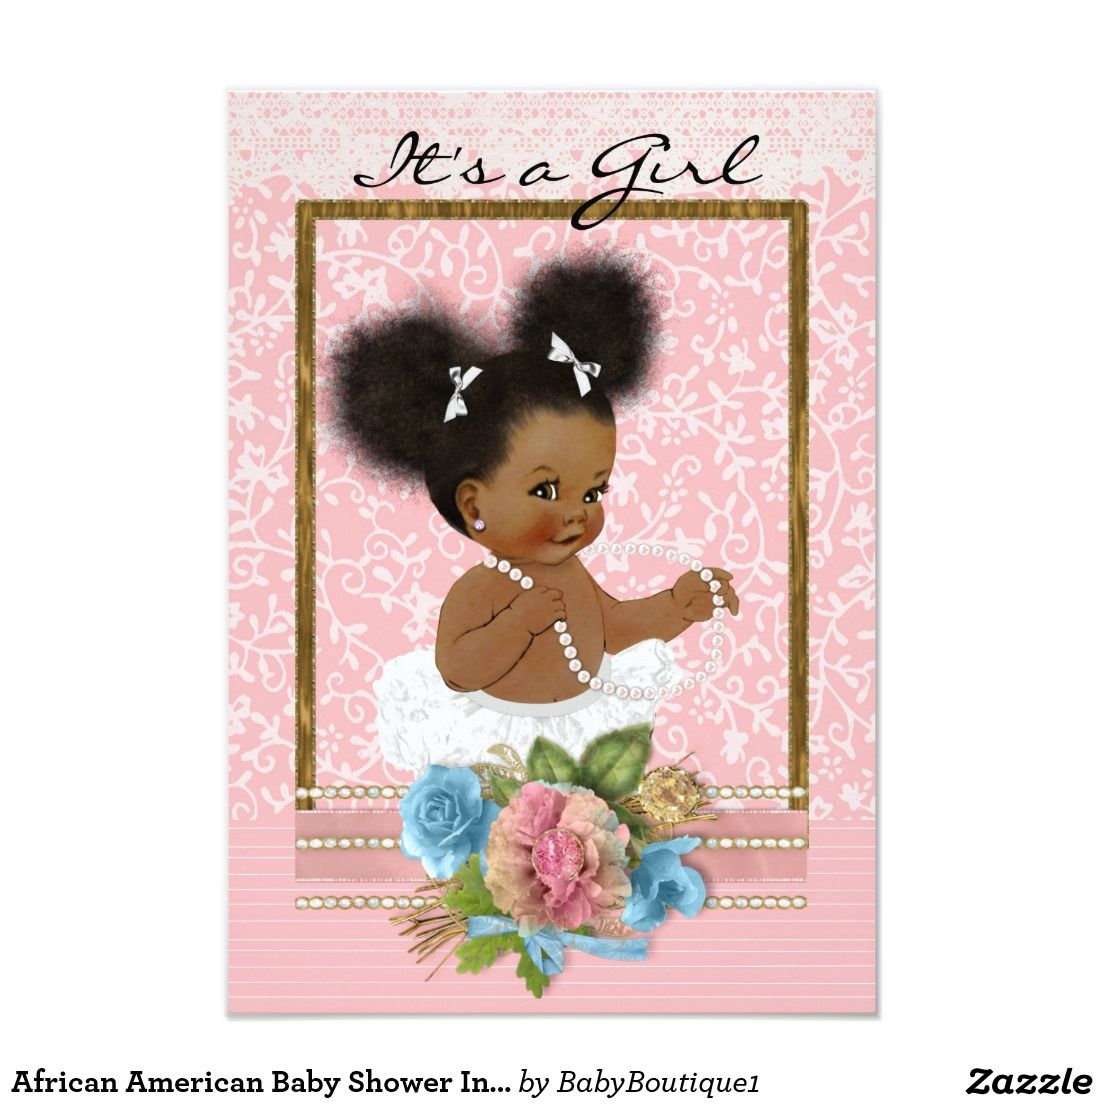 African American Baby Shower Invitation | Baby Boutique ...